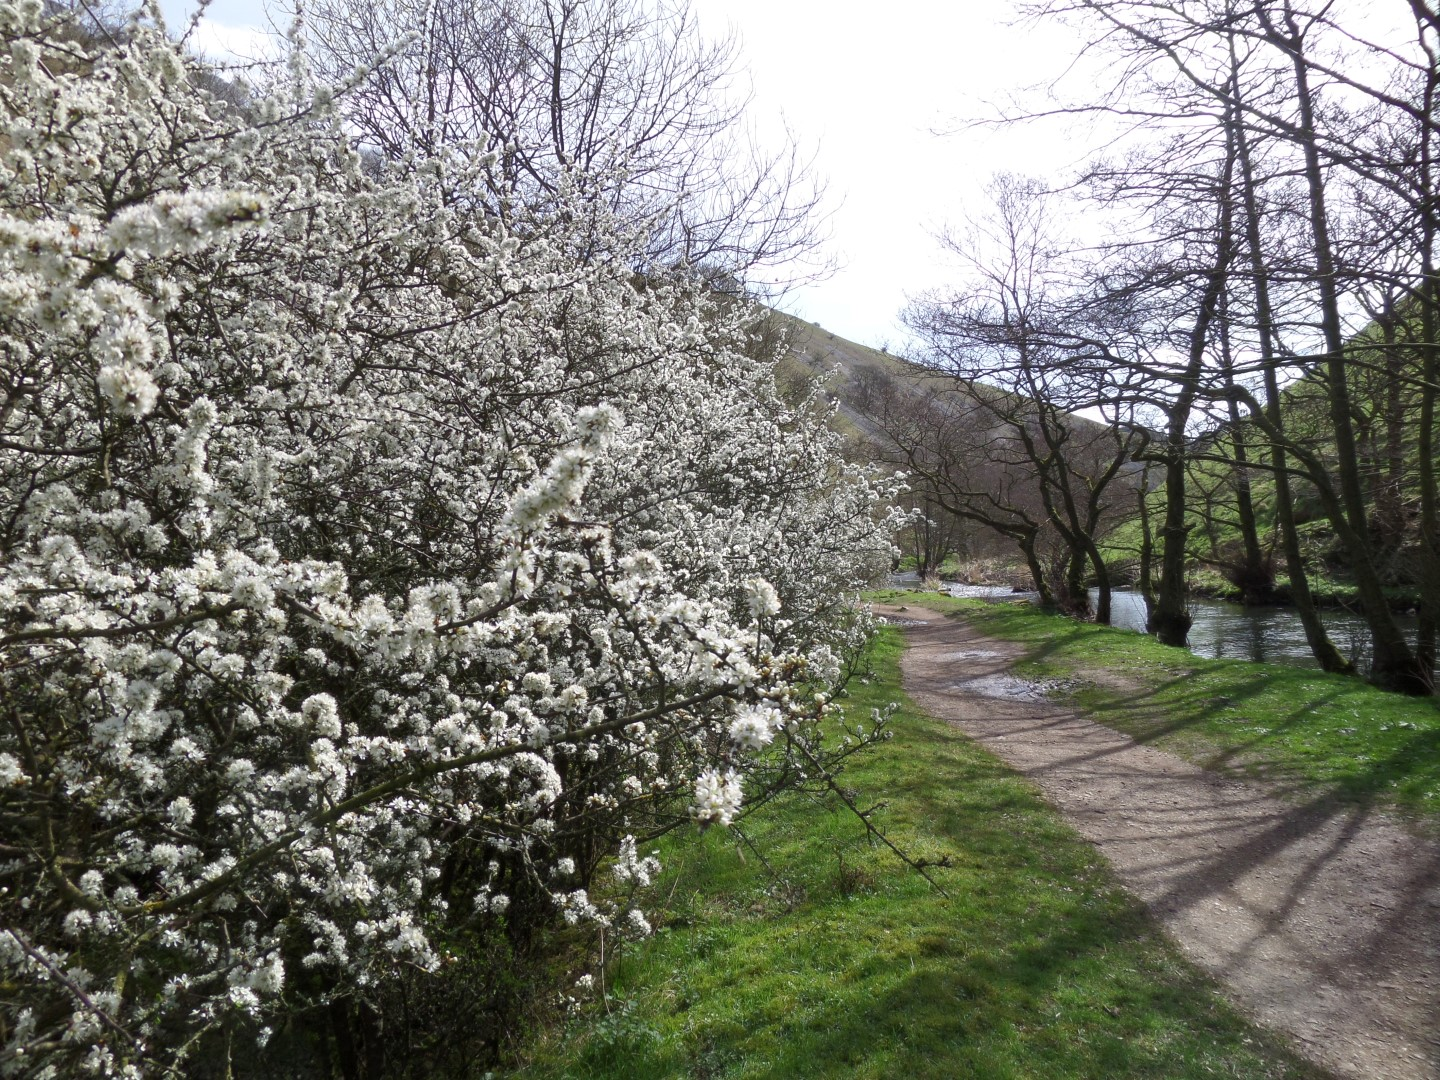 Thorn blossom putting on a show